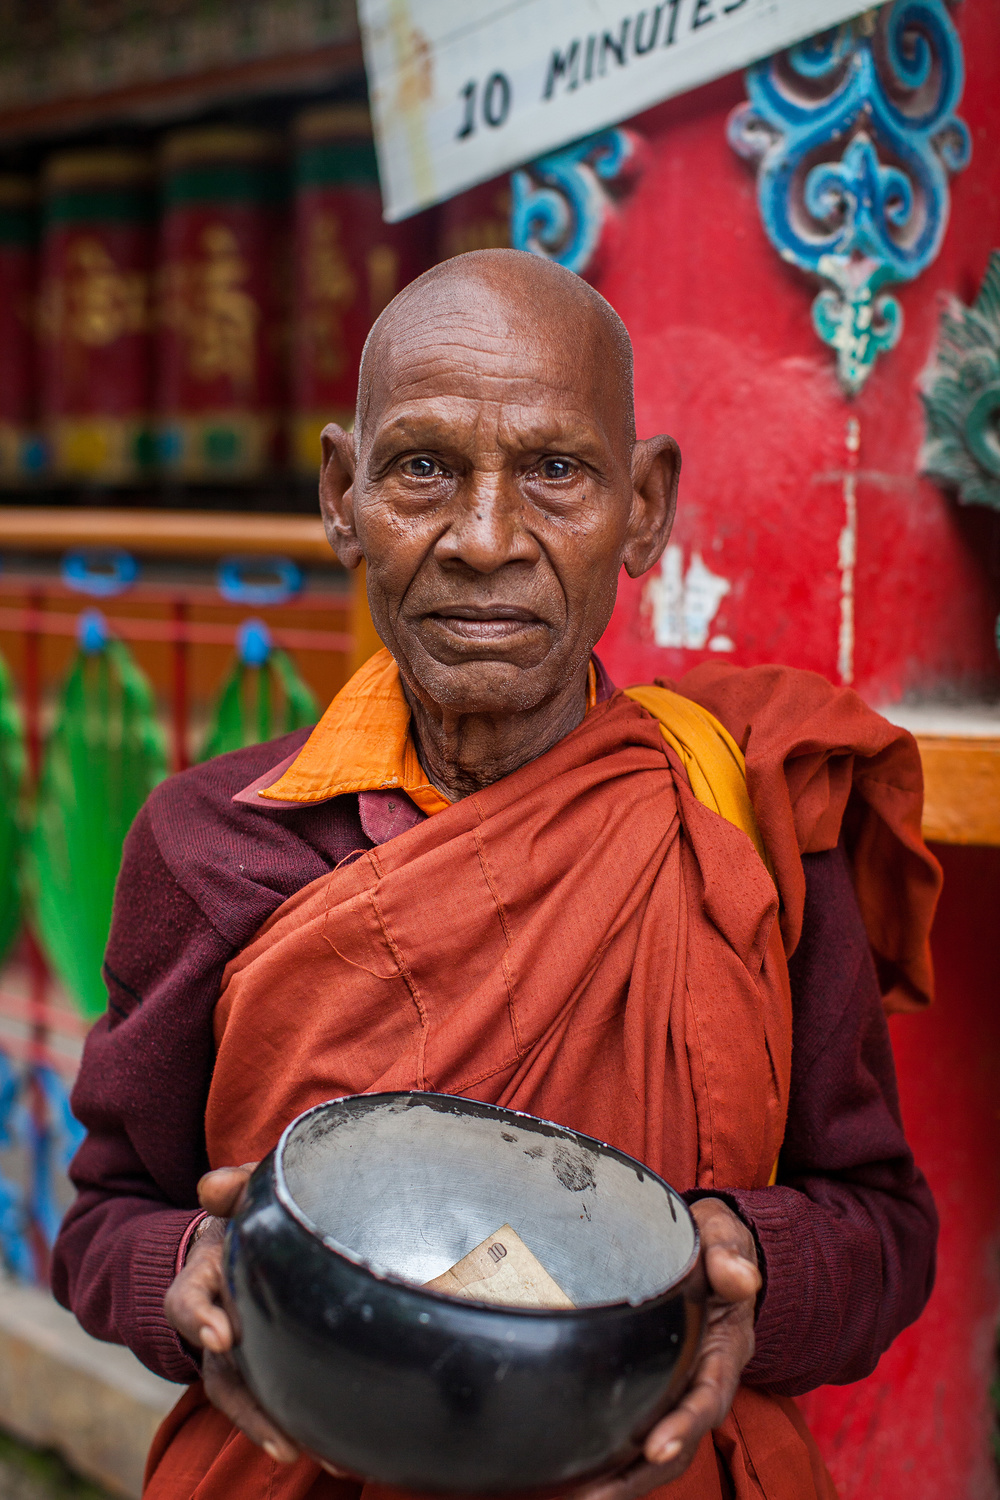 CindyGiovagnoli_India_McCleodganj_travel_photographer_DalaiLama-051.jpg